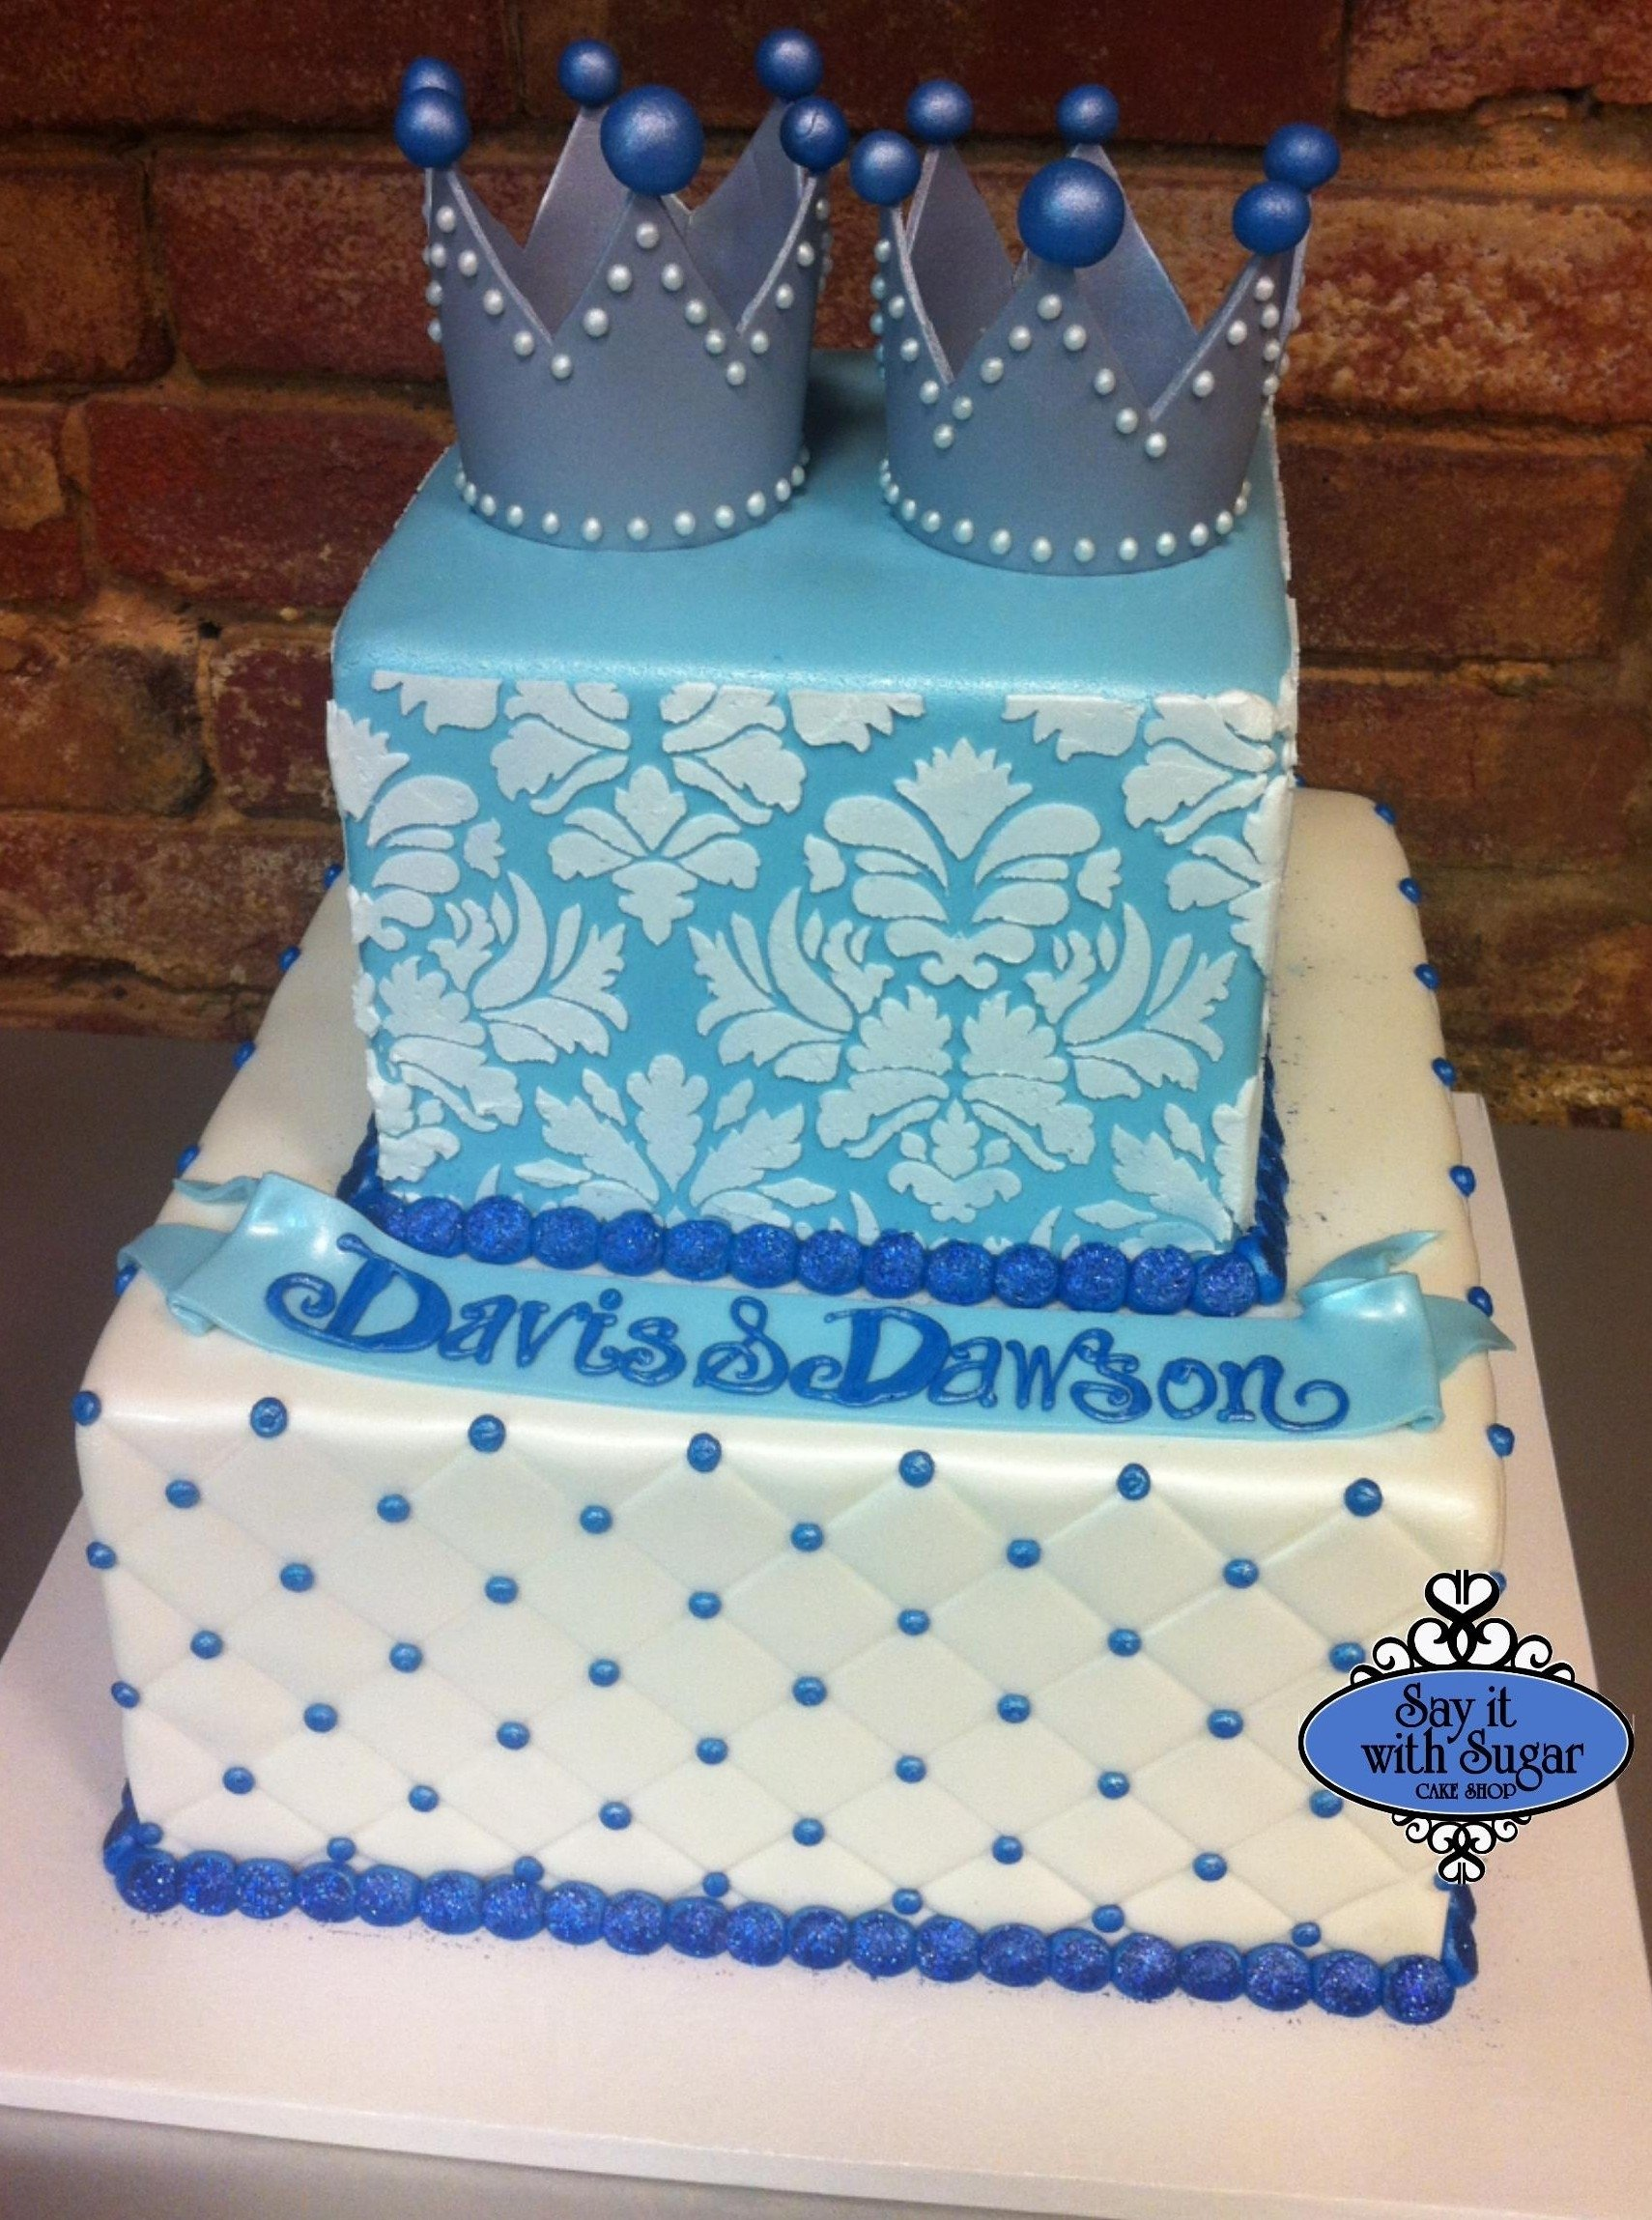 10 Cute Baby Shower Ideas For Twin Boys twin prince baby shower cake cakessay it with sugar cake shop 1